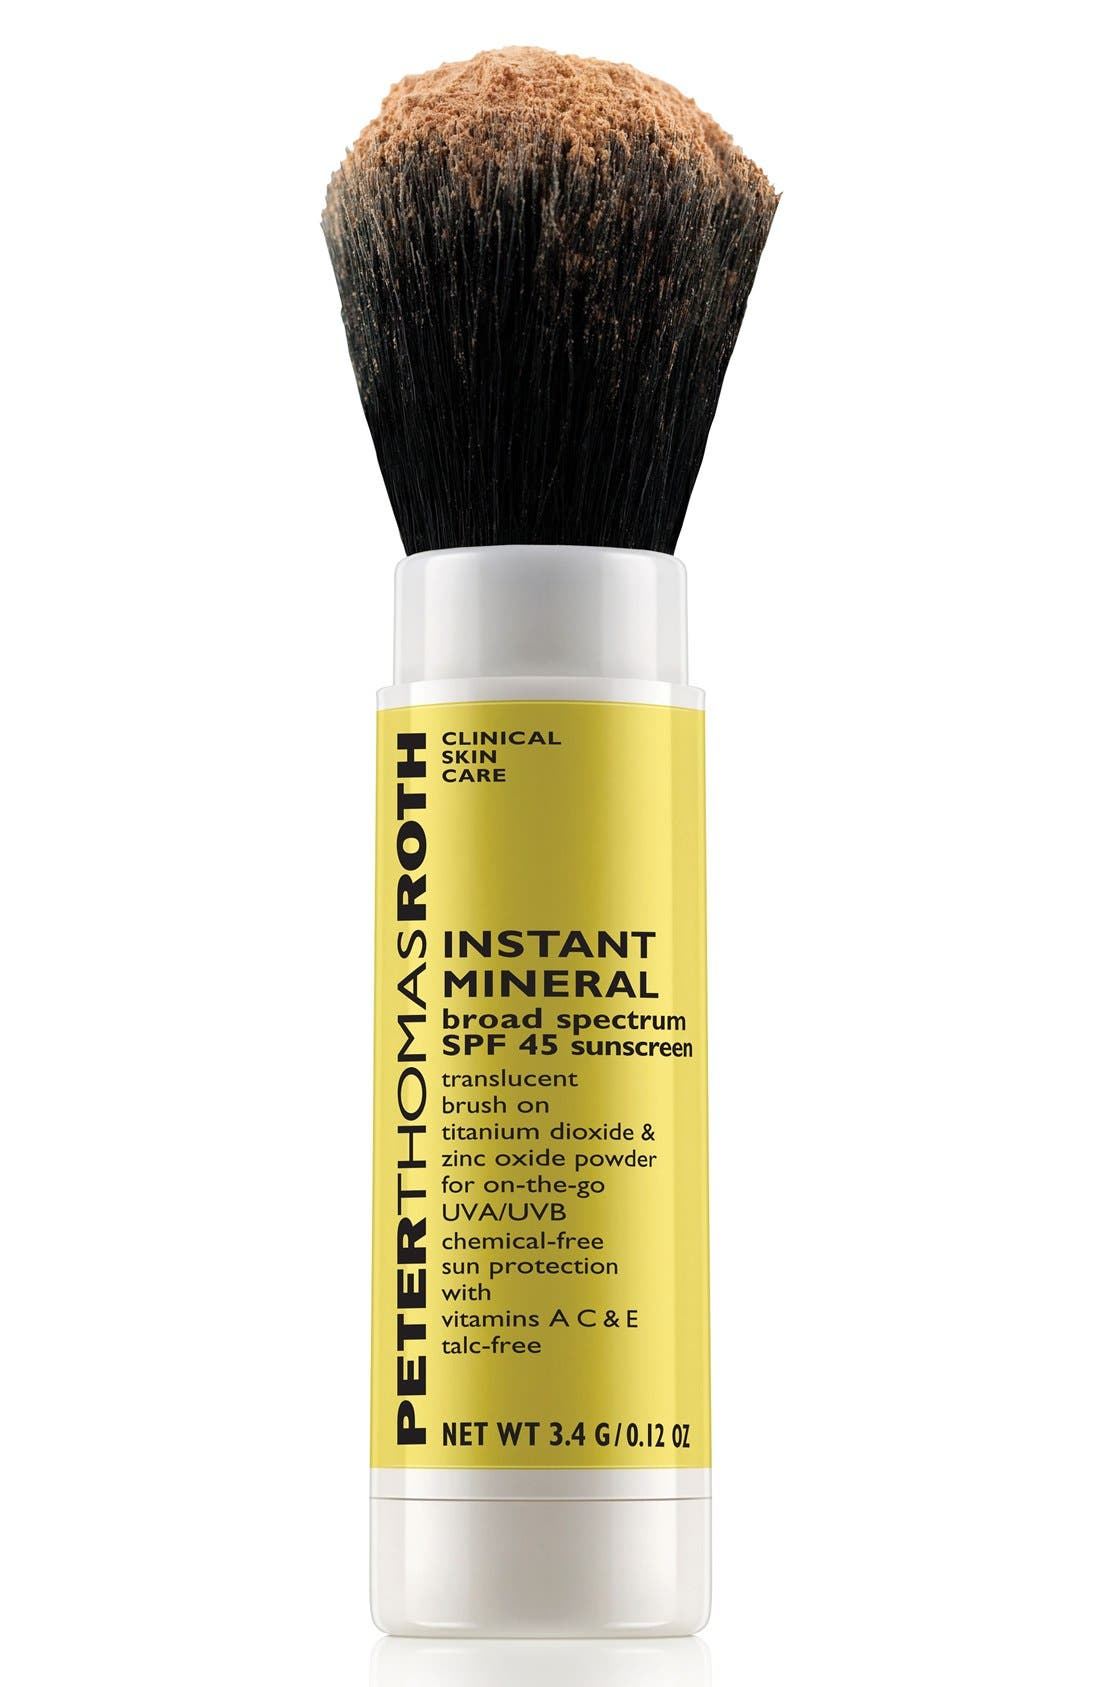 Peter Thomas Roth Instant Mineral Broad Spectrum Spf 45 Sunscreen